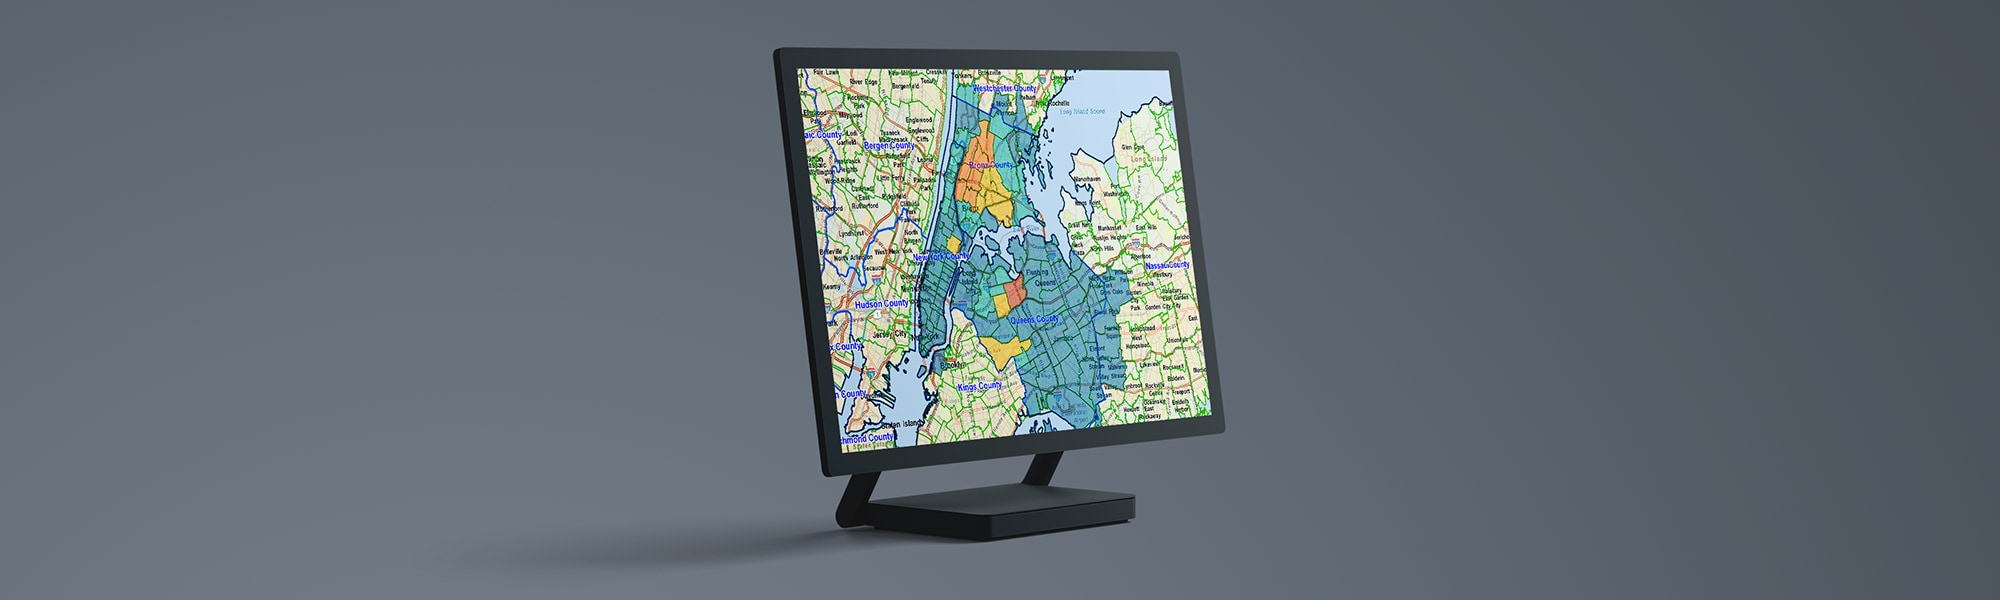 Know your audience: Claritas helps businesses enhance marketing campaigns with geospatial data